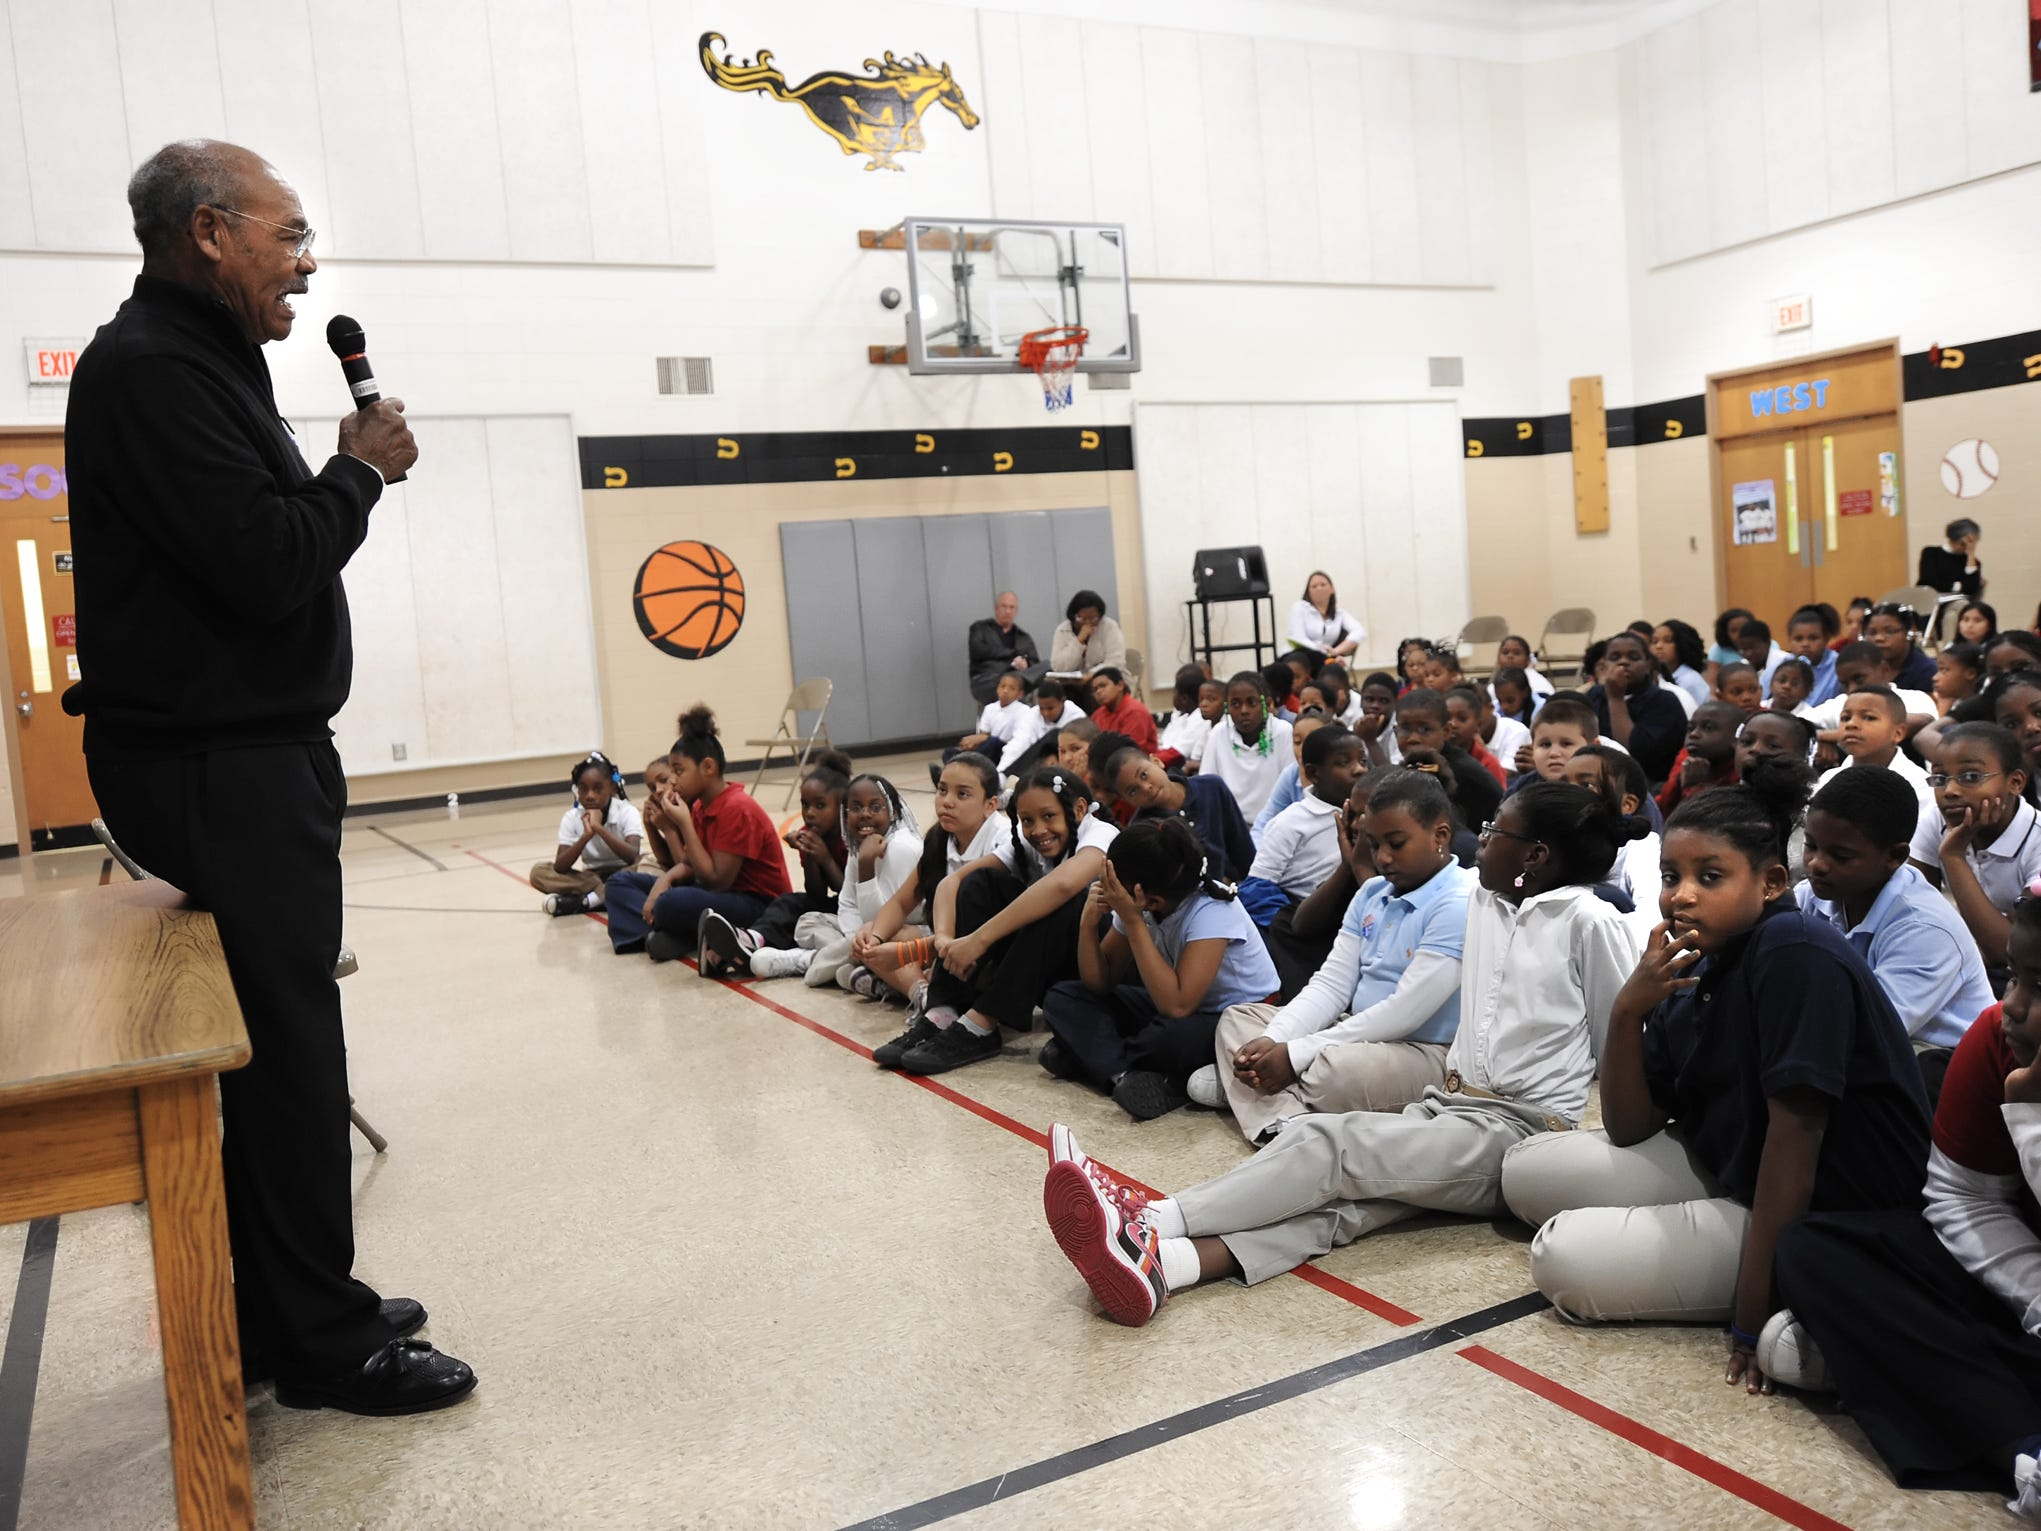 Indiana University football legend George Taliaferro, 91, was the first African American drafted by the All-American Football Conference back in 1949, discussed his personal story of triumph with Robert Lee Frost Elementary School students on Thursday, October 30, 2008.